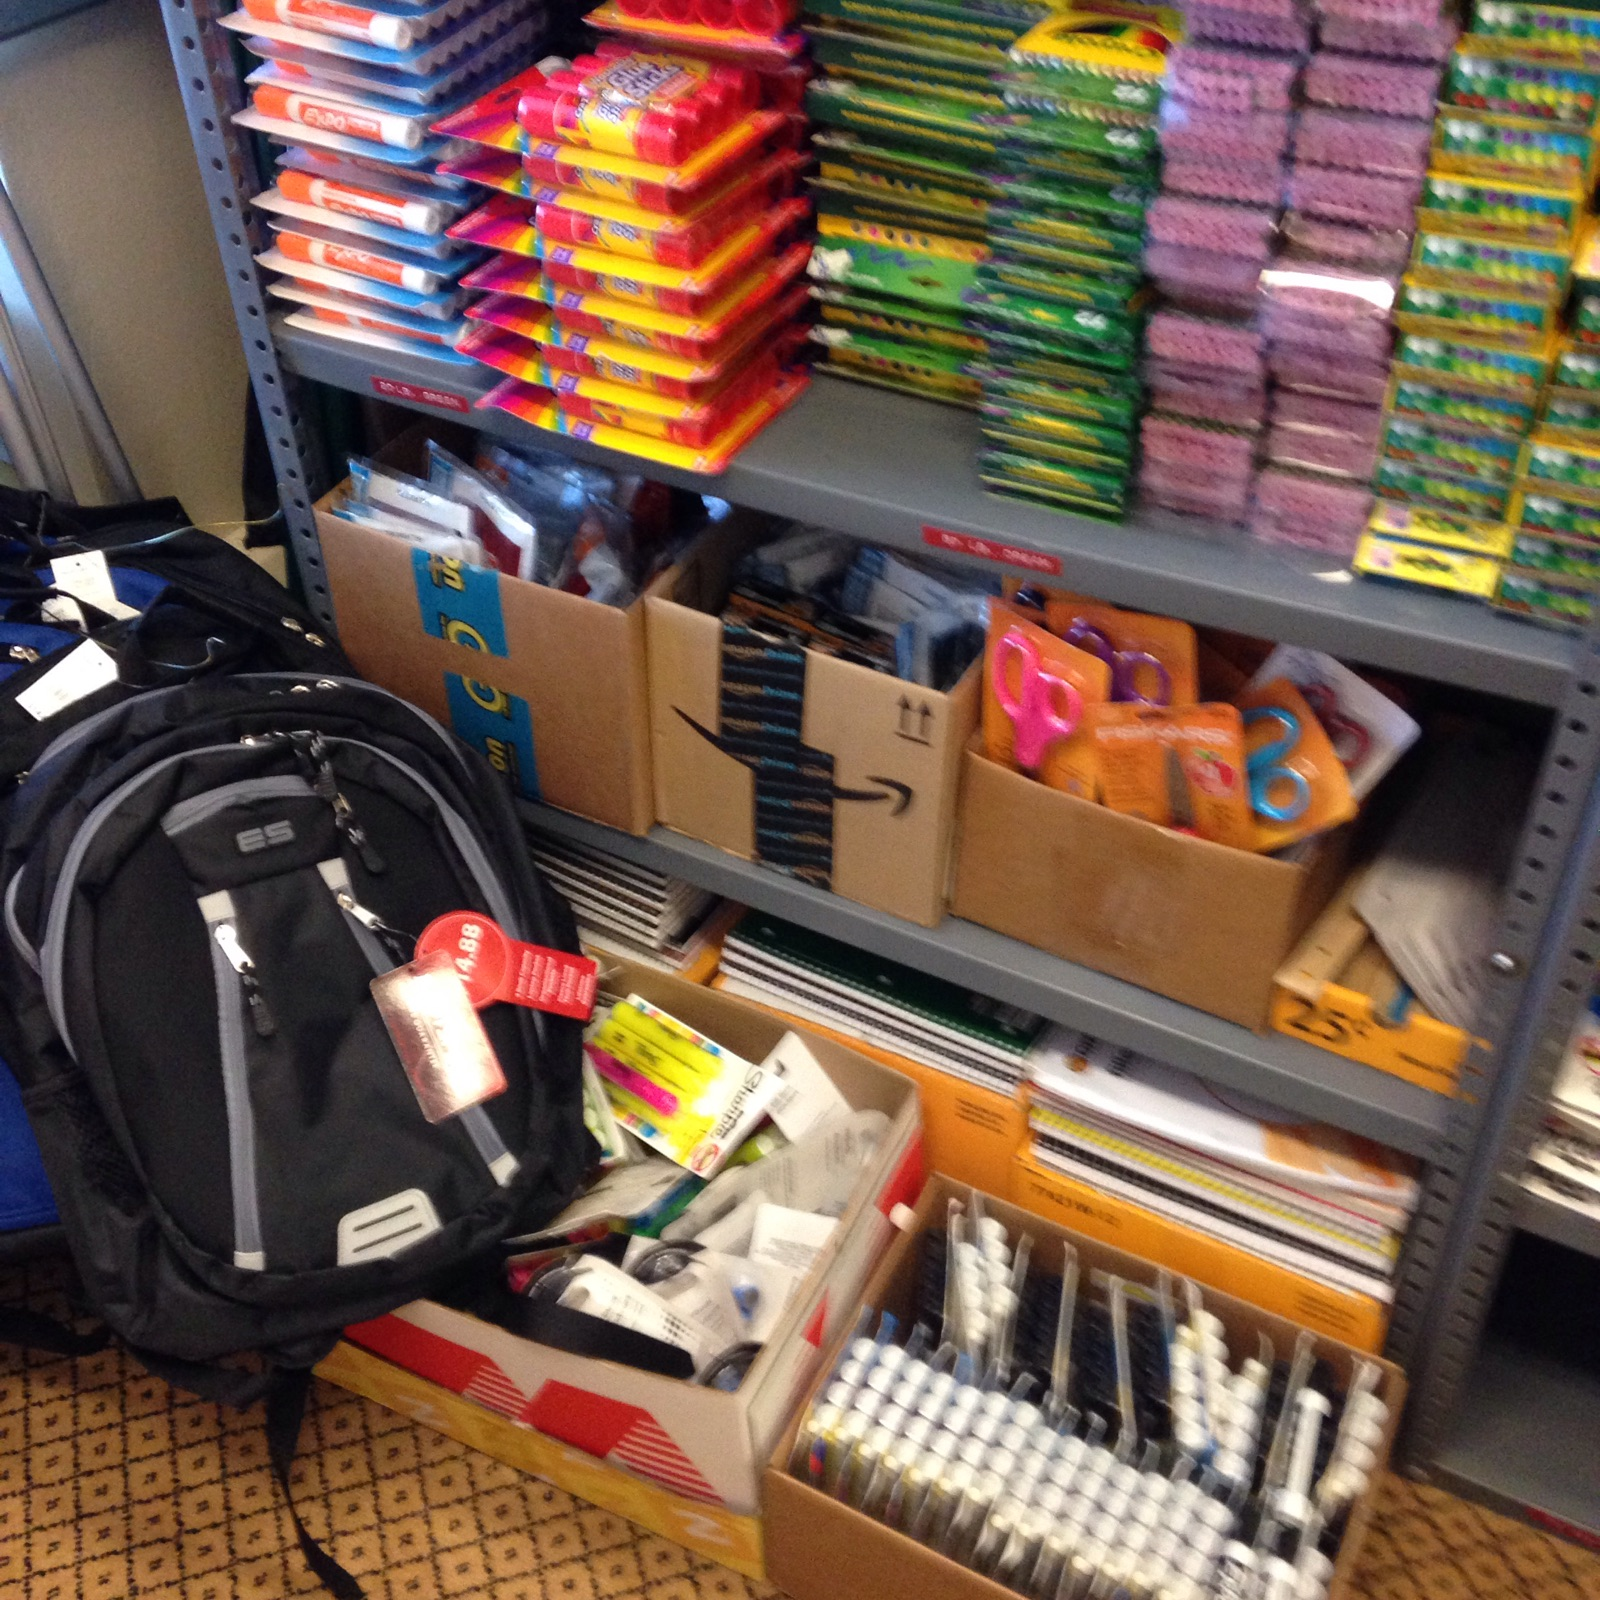 Mid-Year School Supplies For Needy Students within the Sheboygan Area School District.